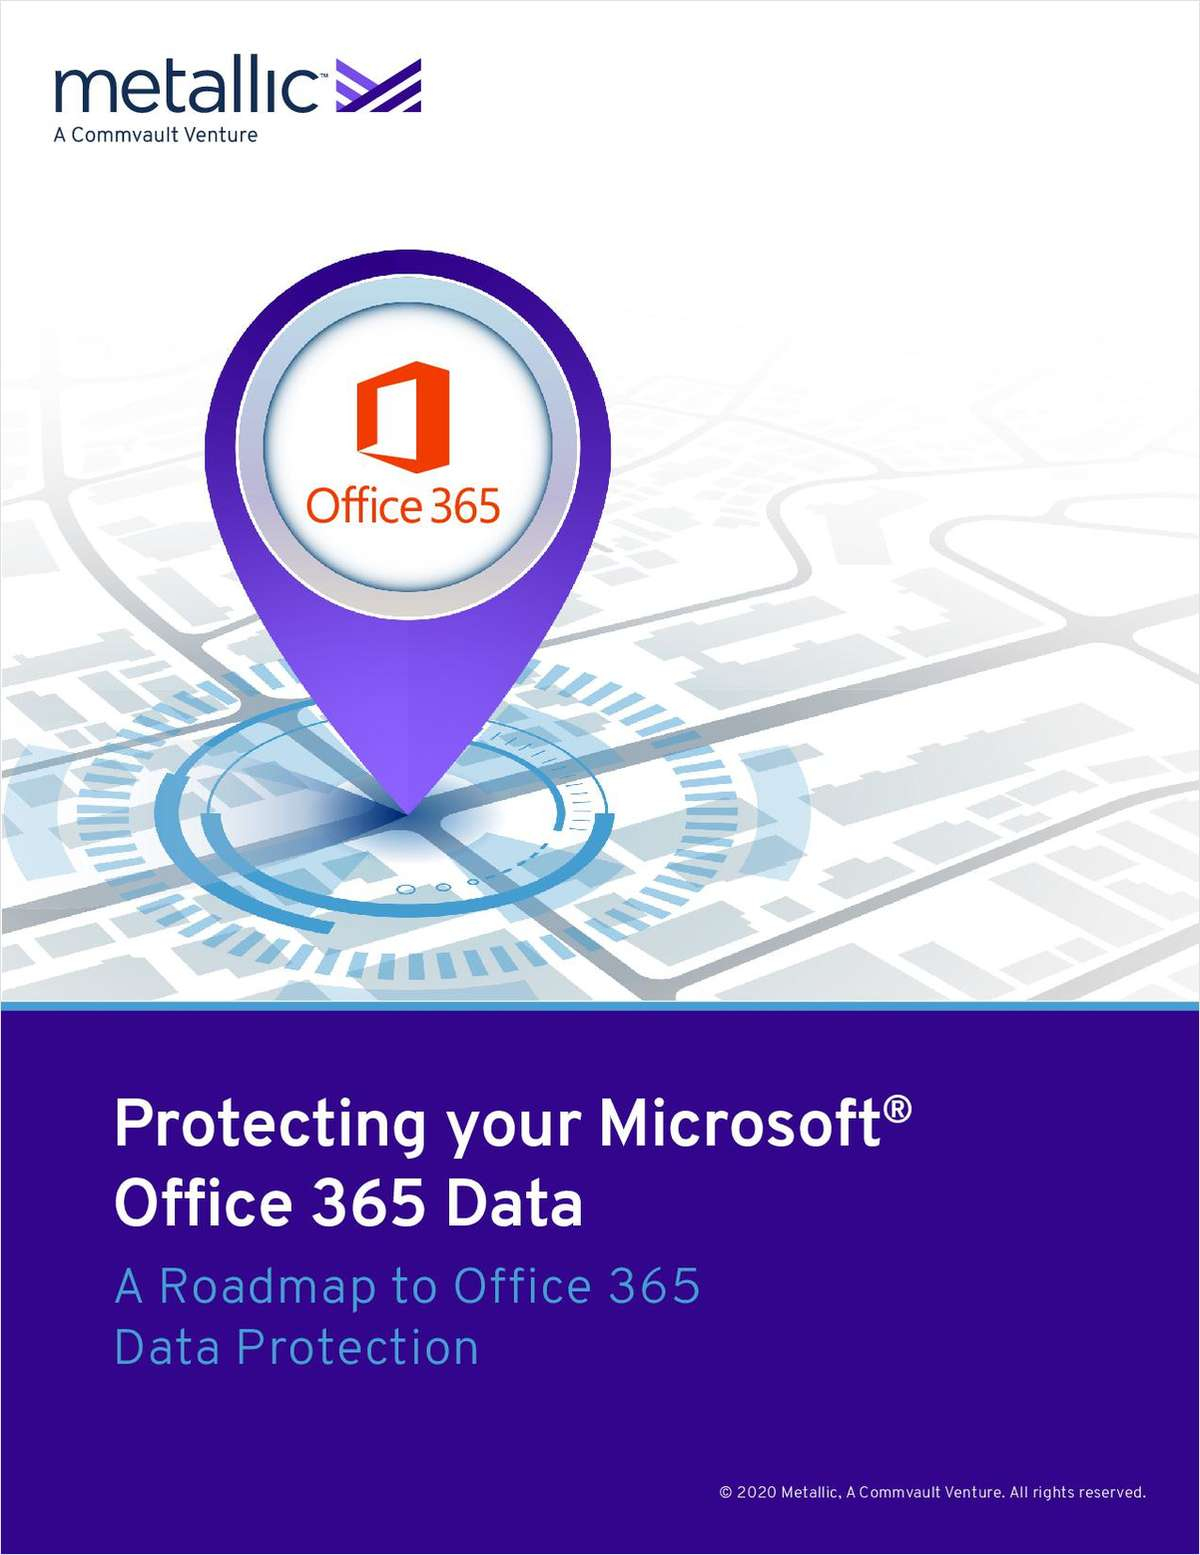 The Best Way to Protect your Microsoft® Office 365 Data